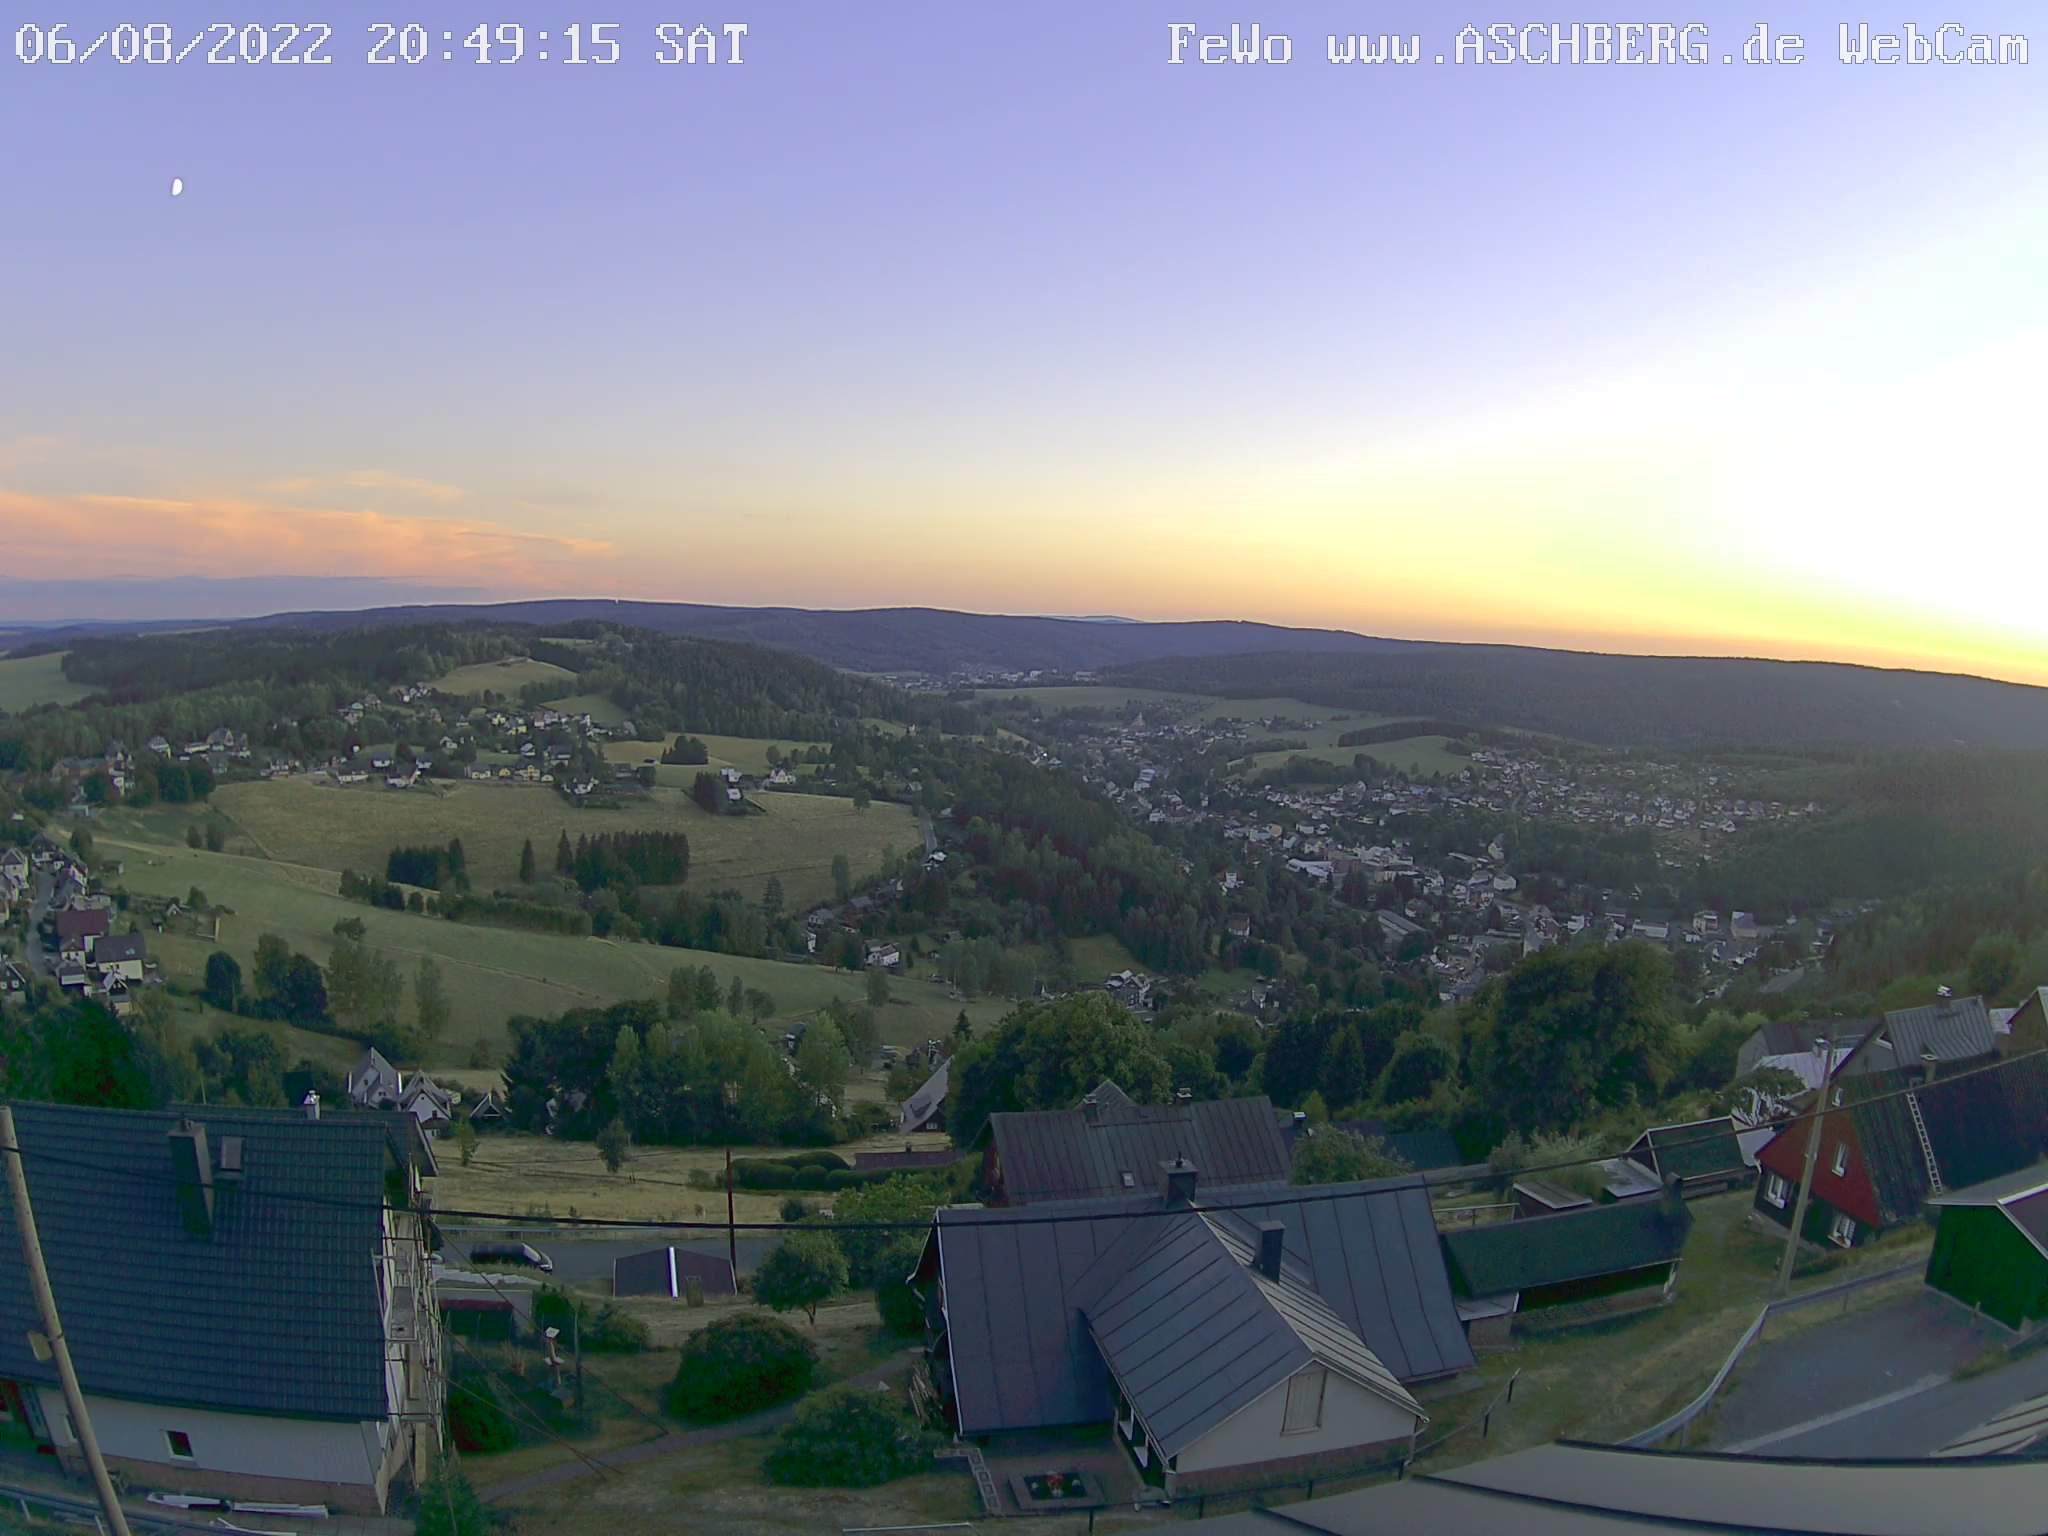 Webcam am Aschberg